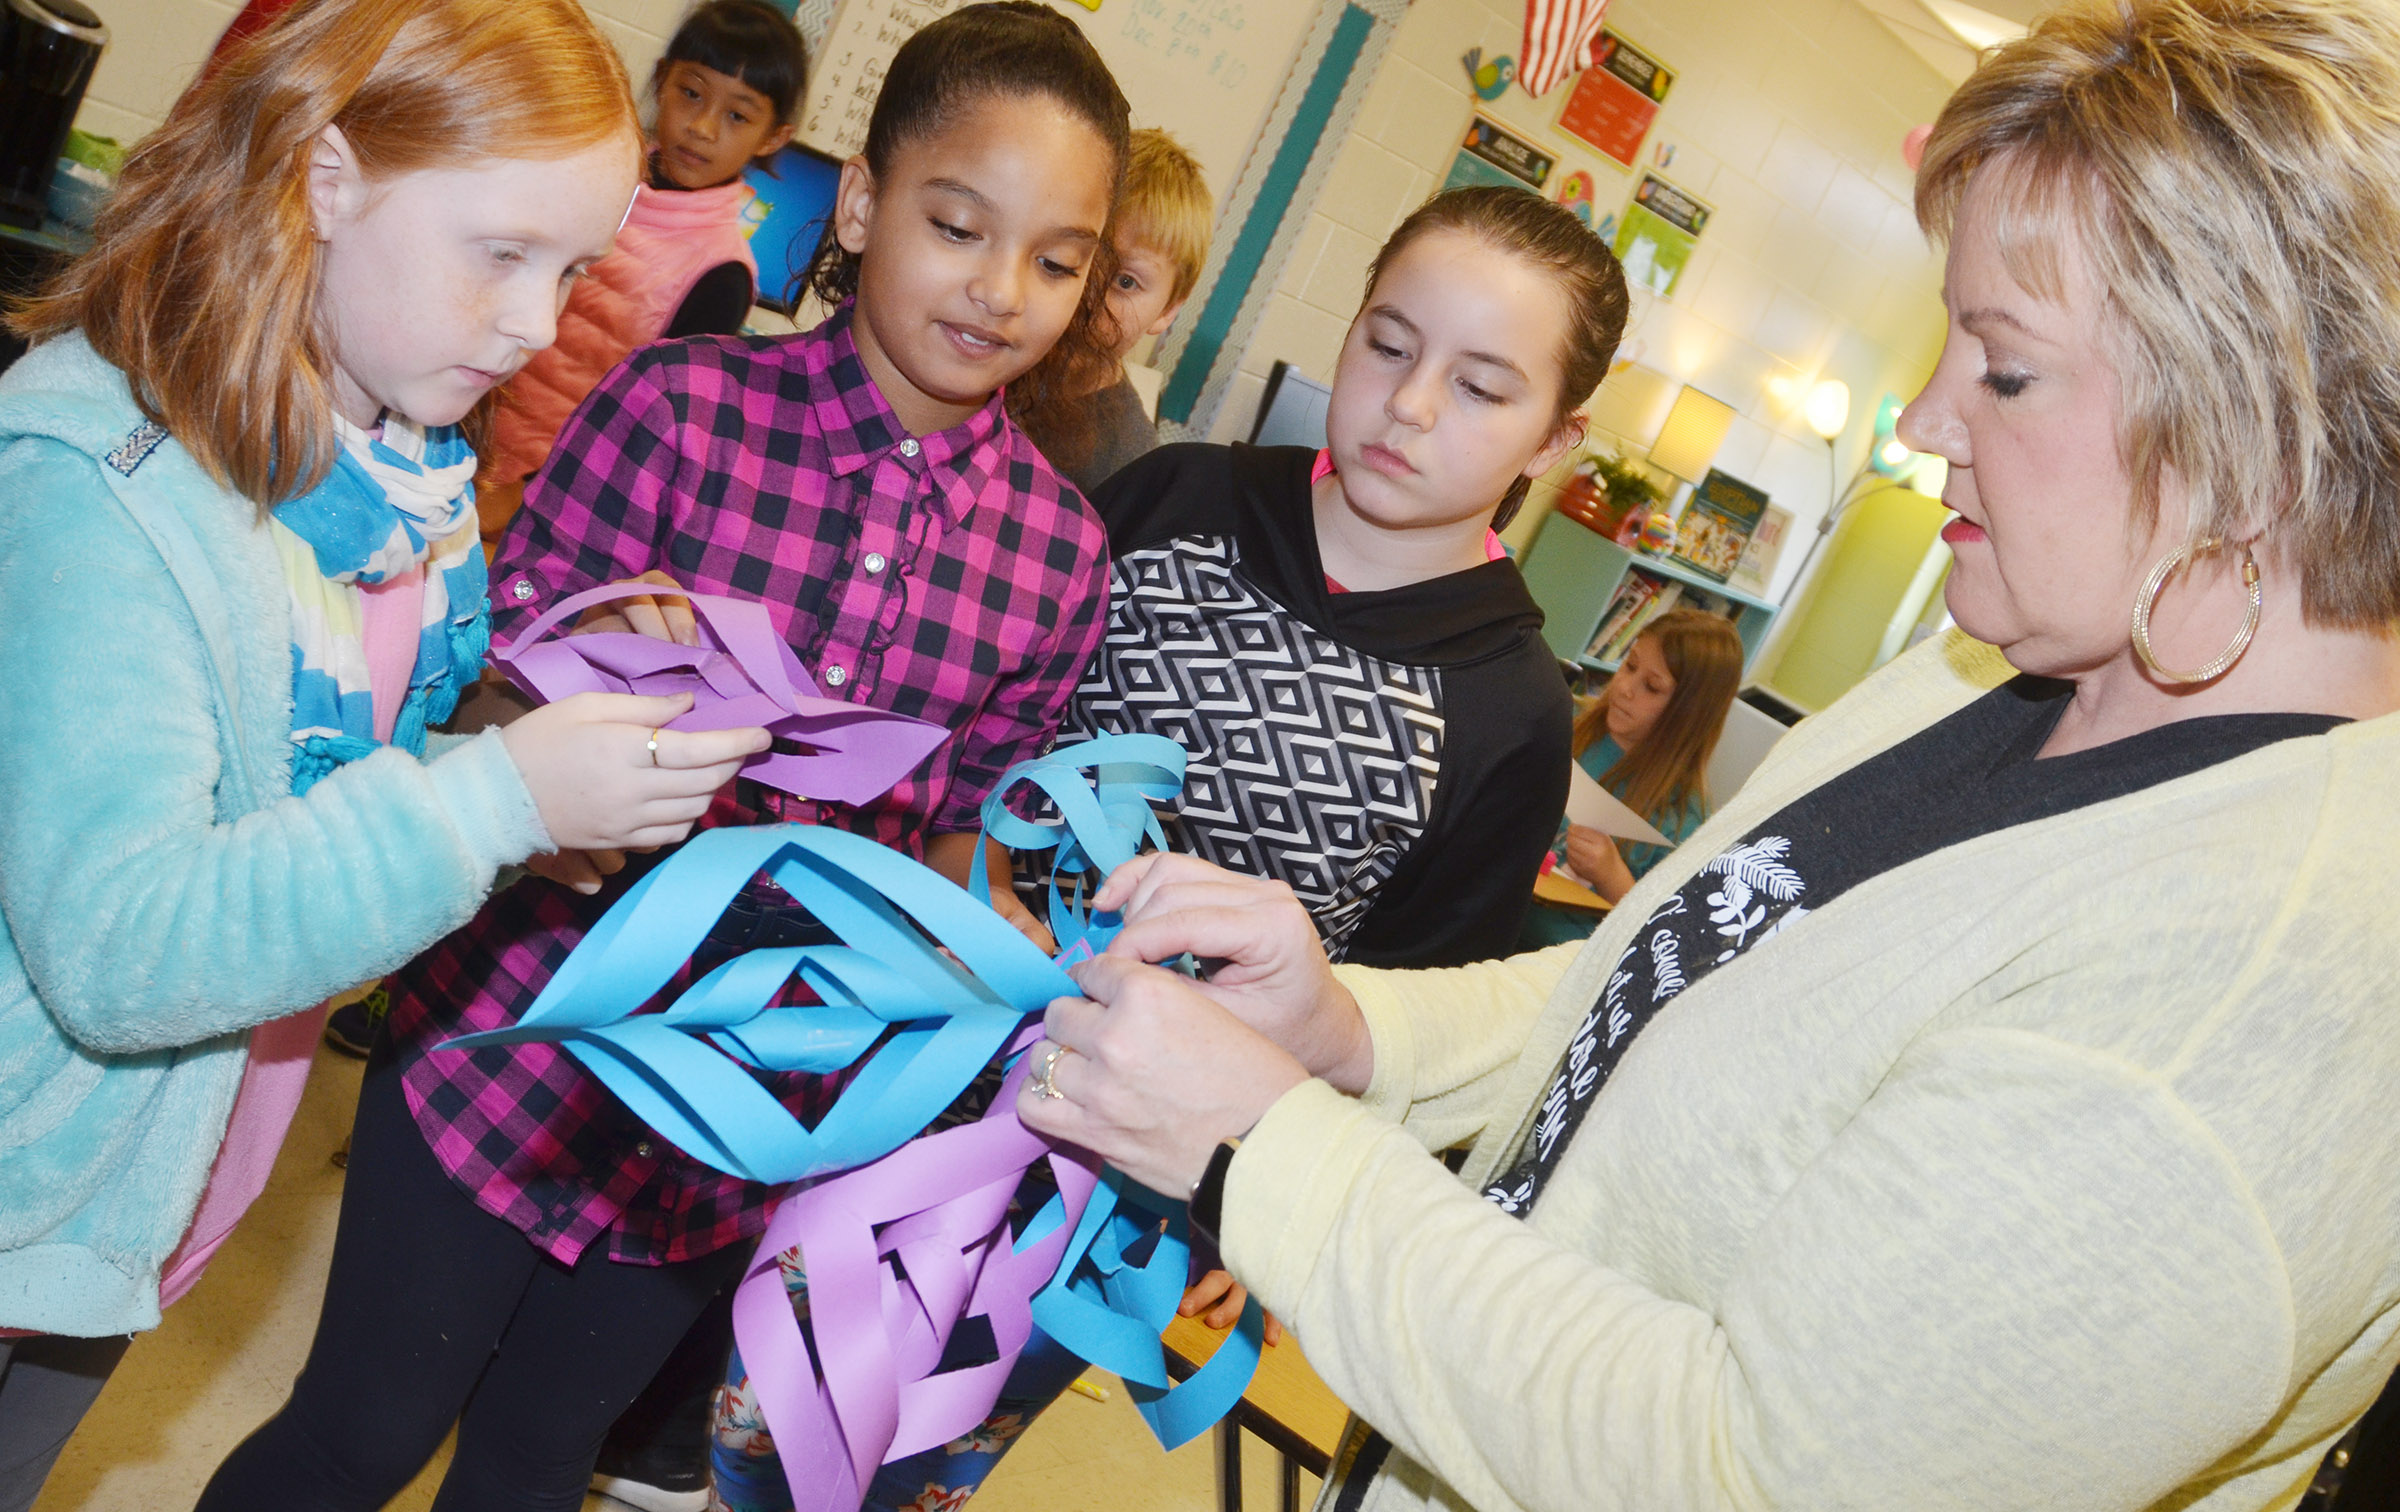 CES fourth-graders, from left, Nora Harris, Aleecia Knezevic and Alexis Roddy make a snowflake with teacher Kaye Agathen.